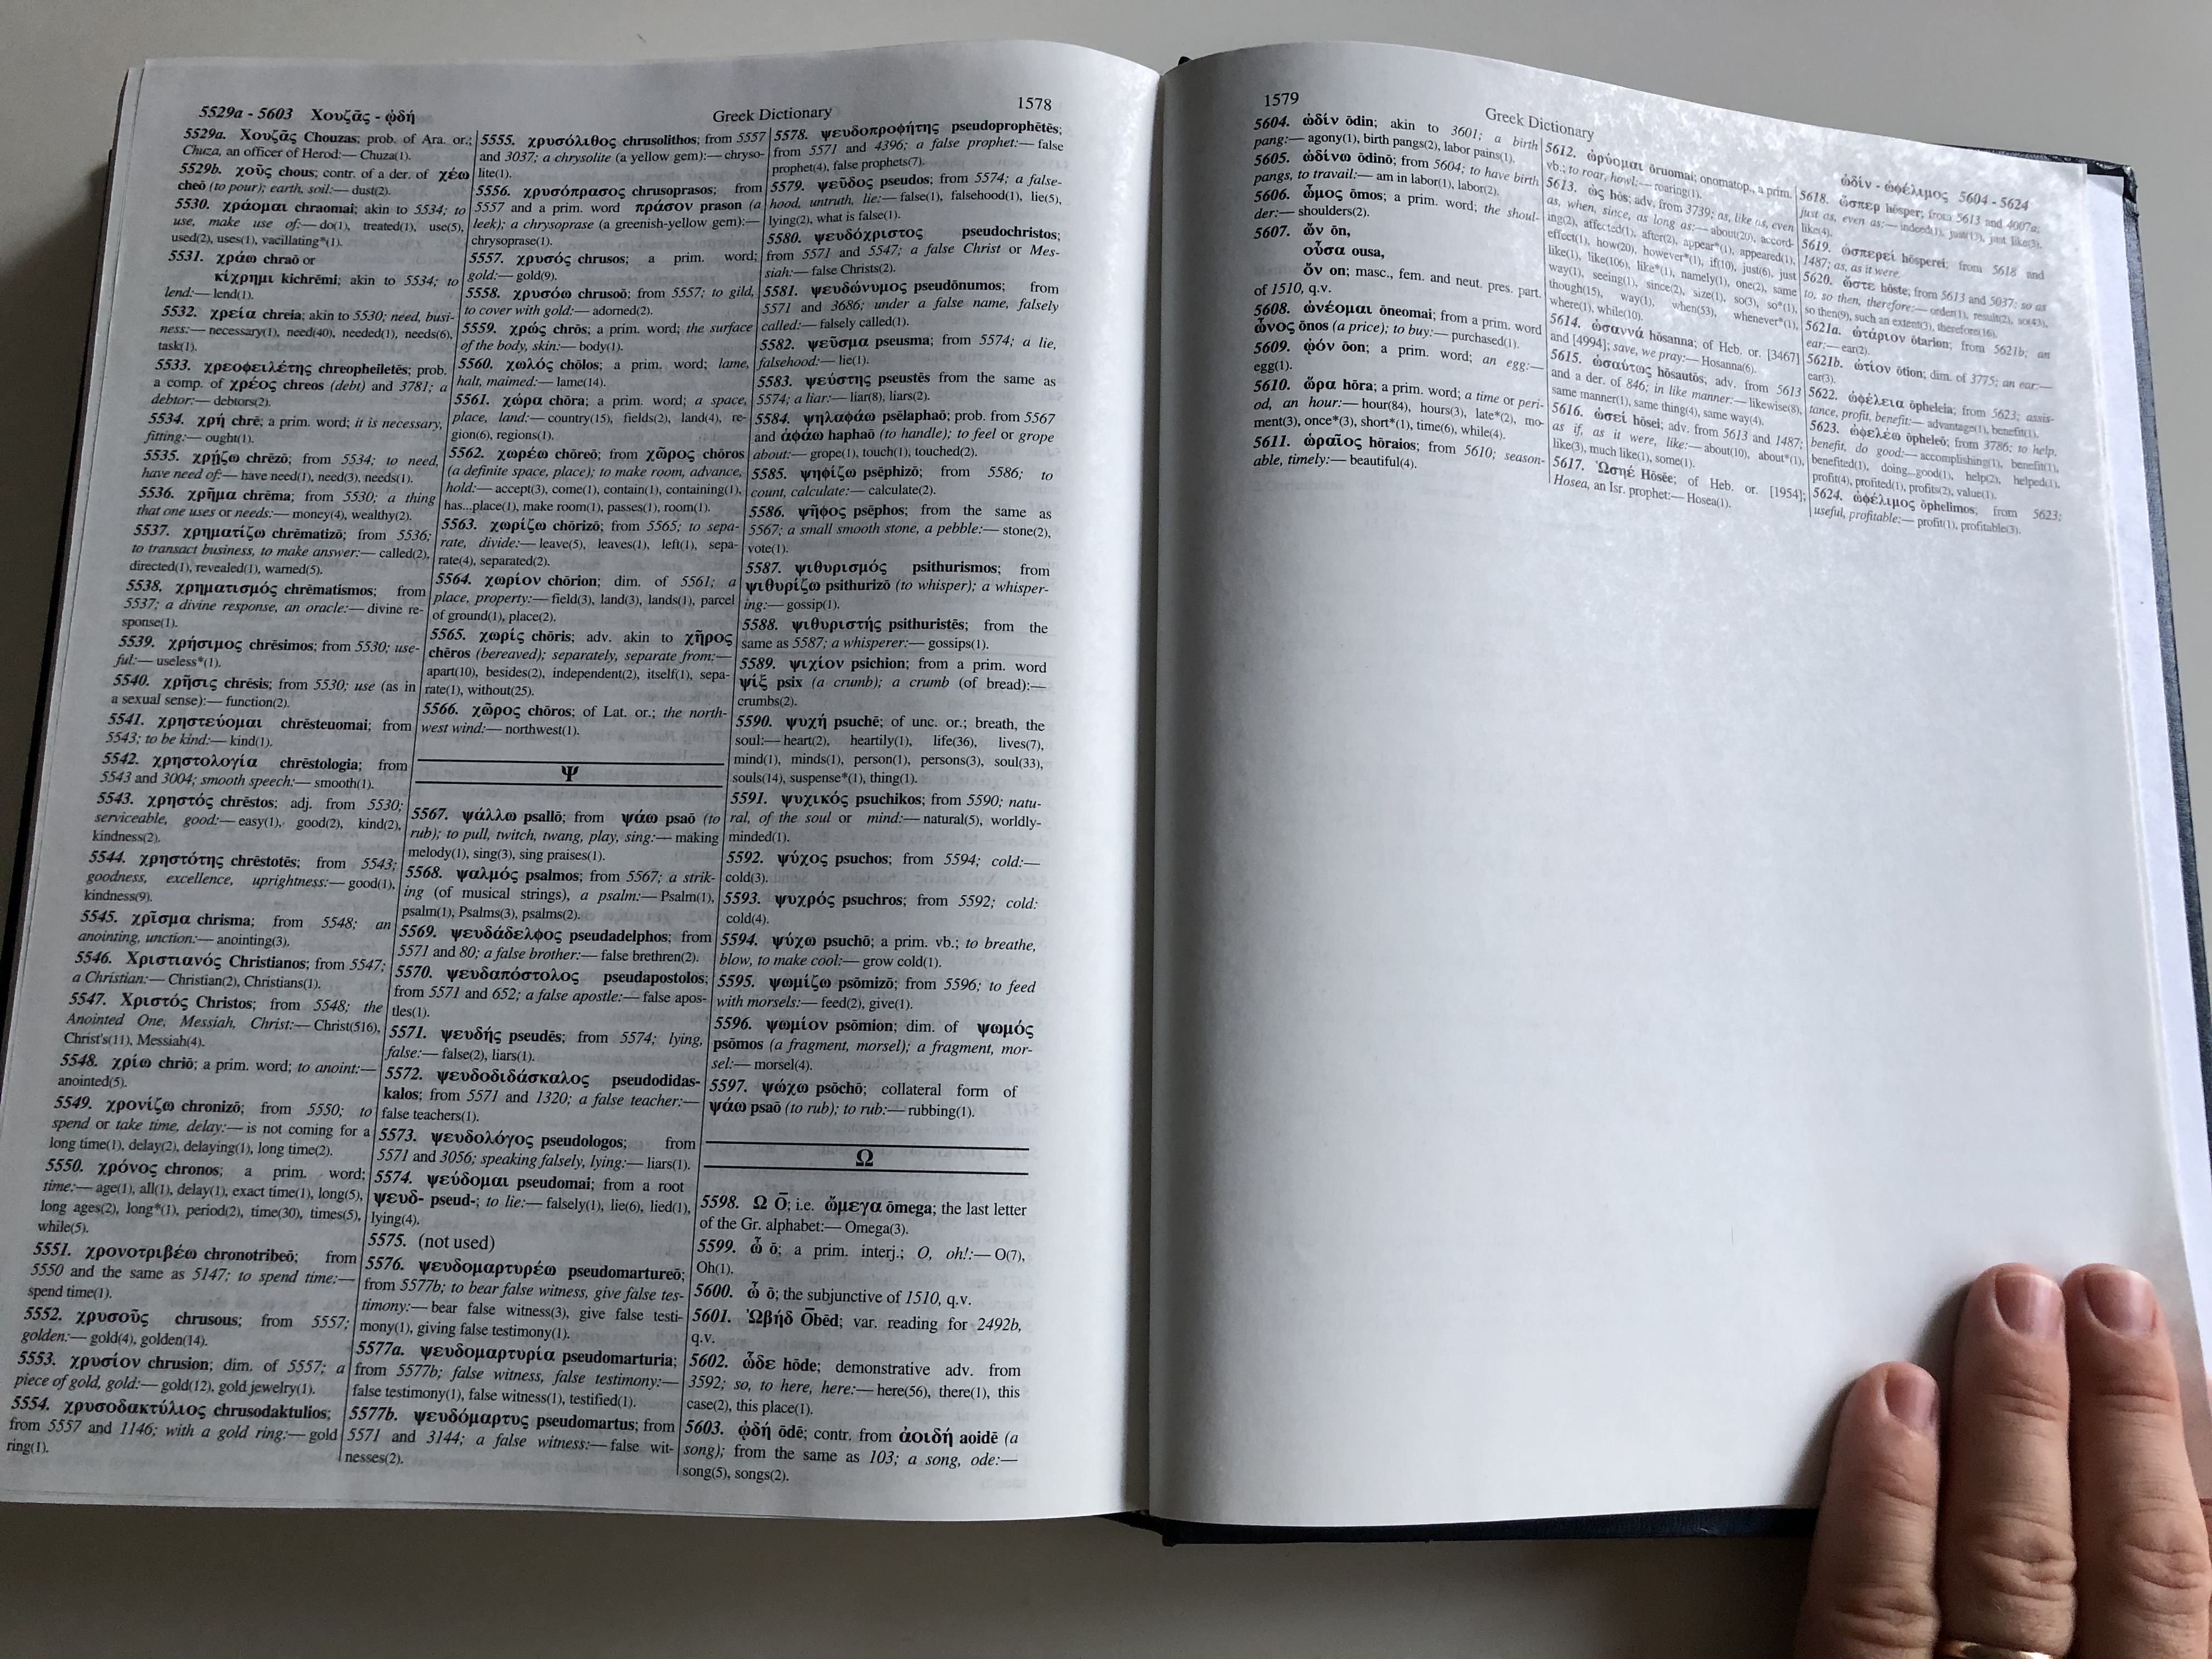 exhaustive-concordance-of-the-bible-for-new-american-standard-updated-edition-nasb-hebrew-aramaic-and-greek-dictionaries-lockman-foundation-1998-hardcover-11-.jpg